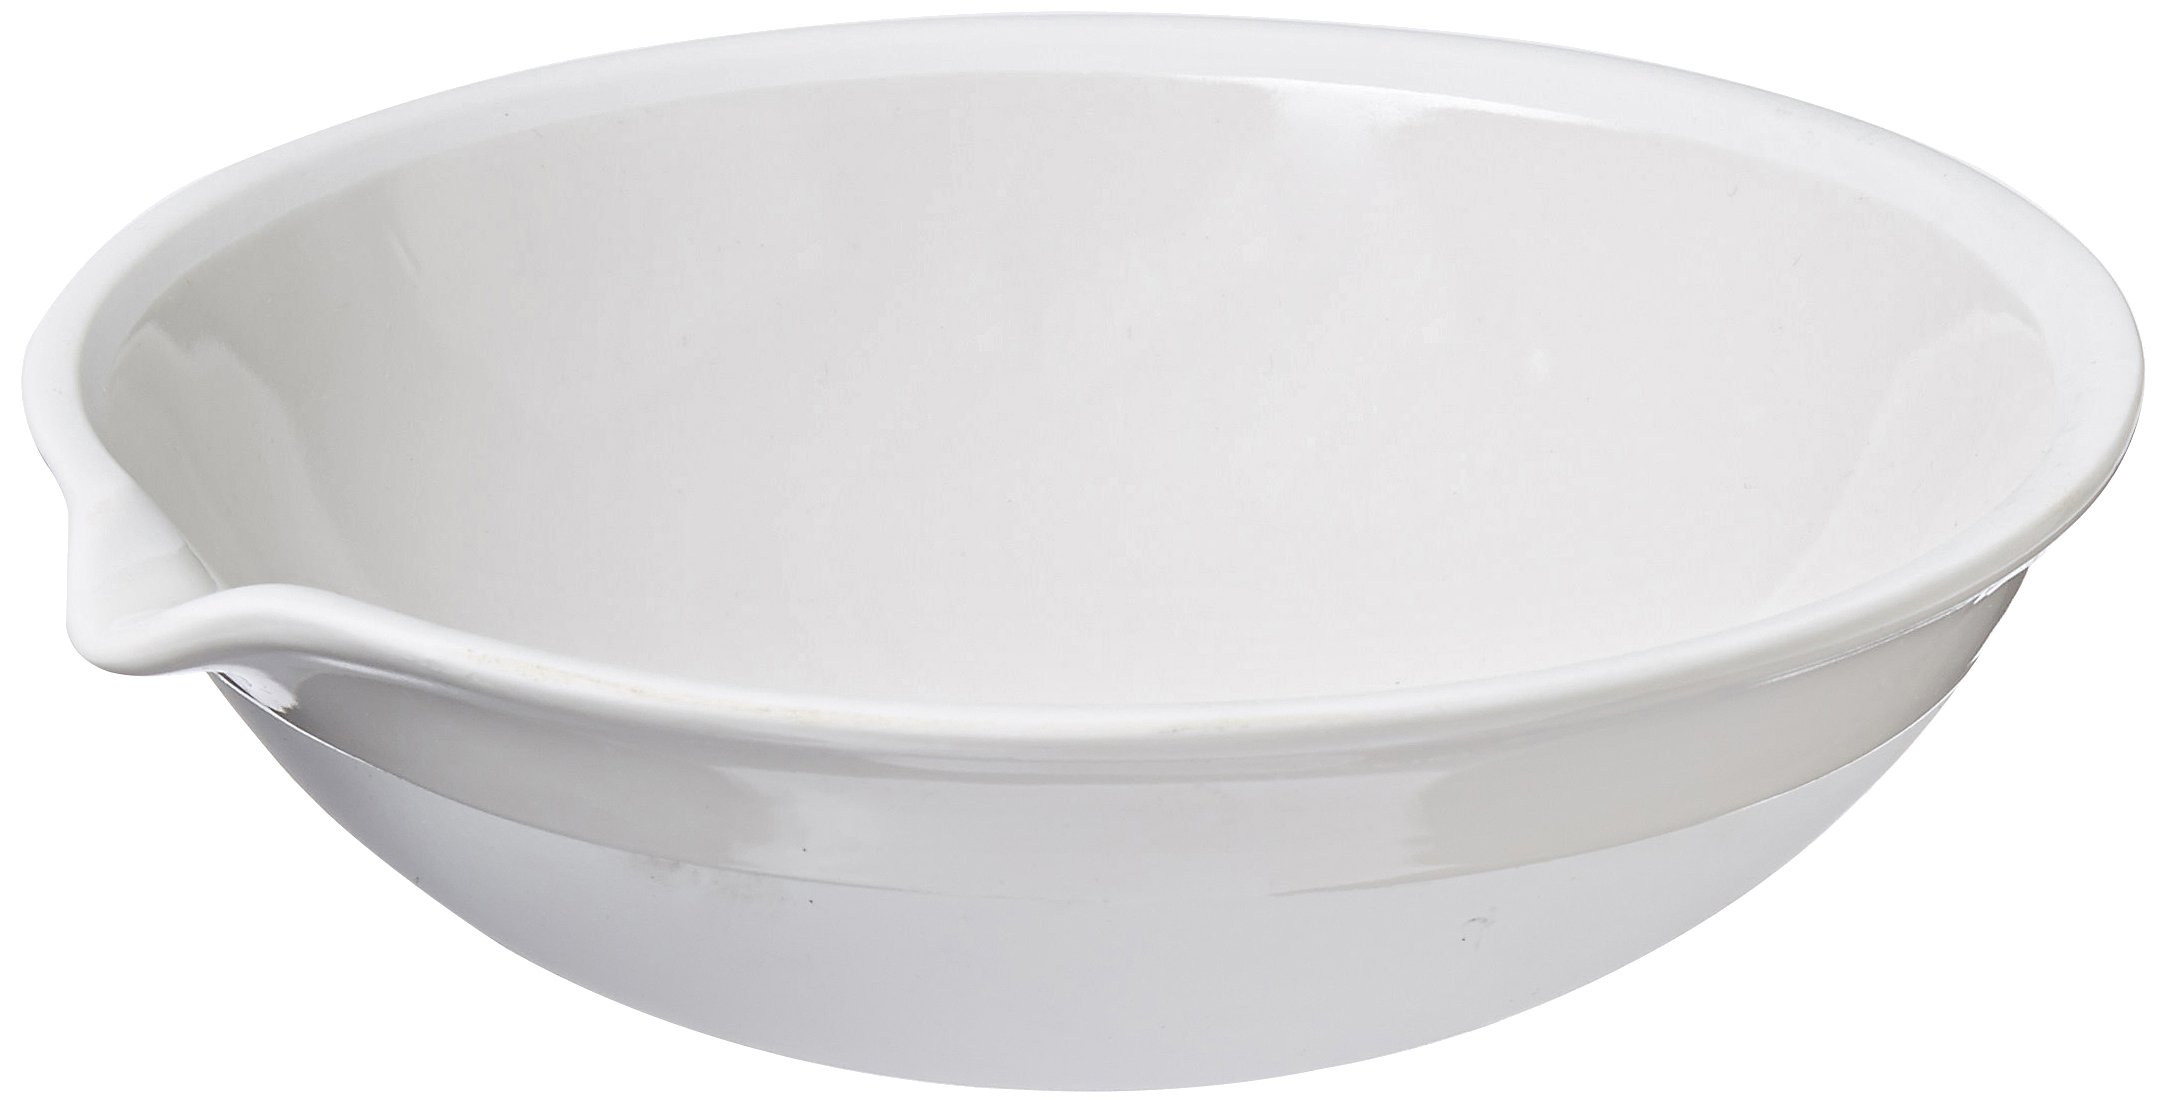 CoorsTek 60205 Porcelain Ceramic Evaporating Dish with Pouring Lip, 525mL Capacity